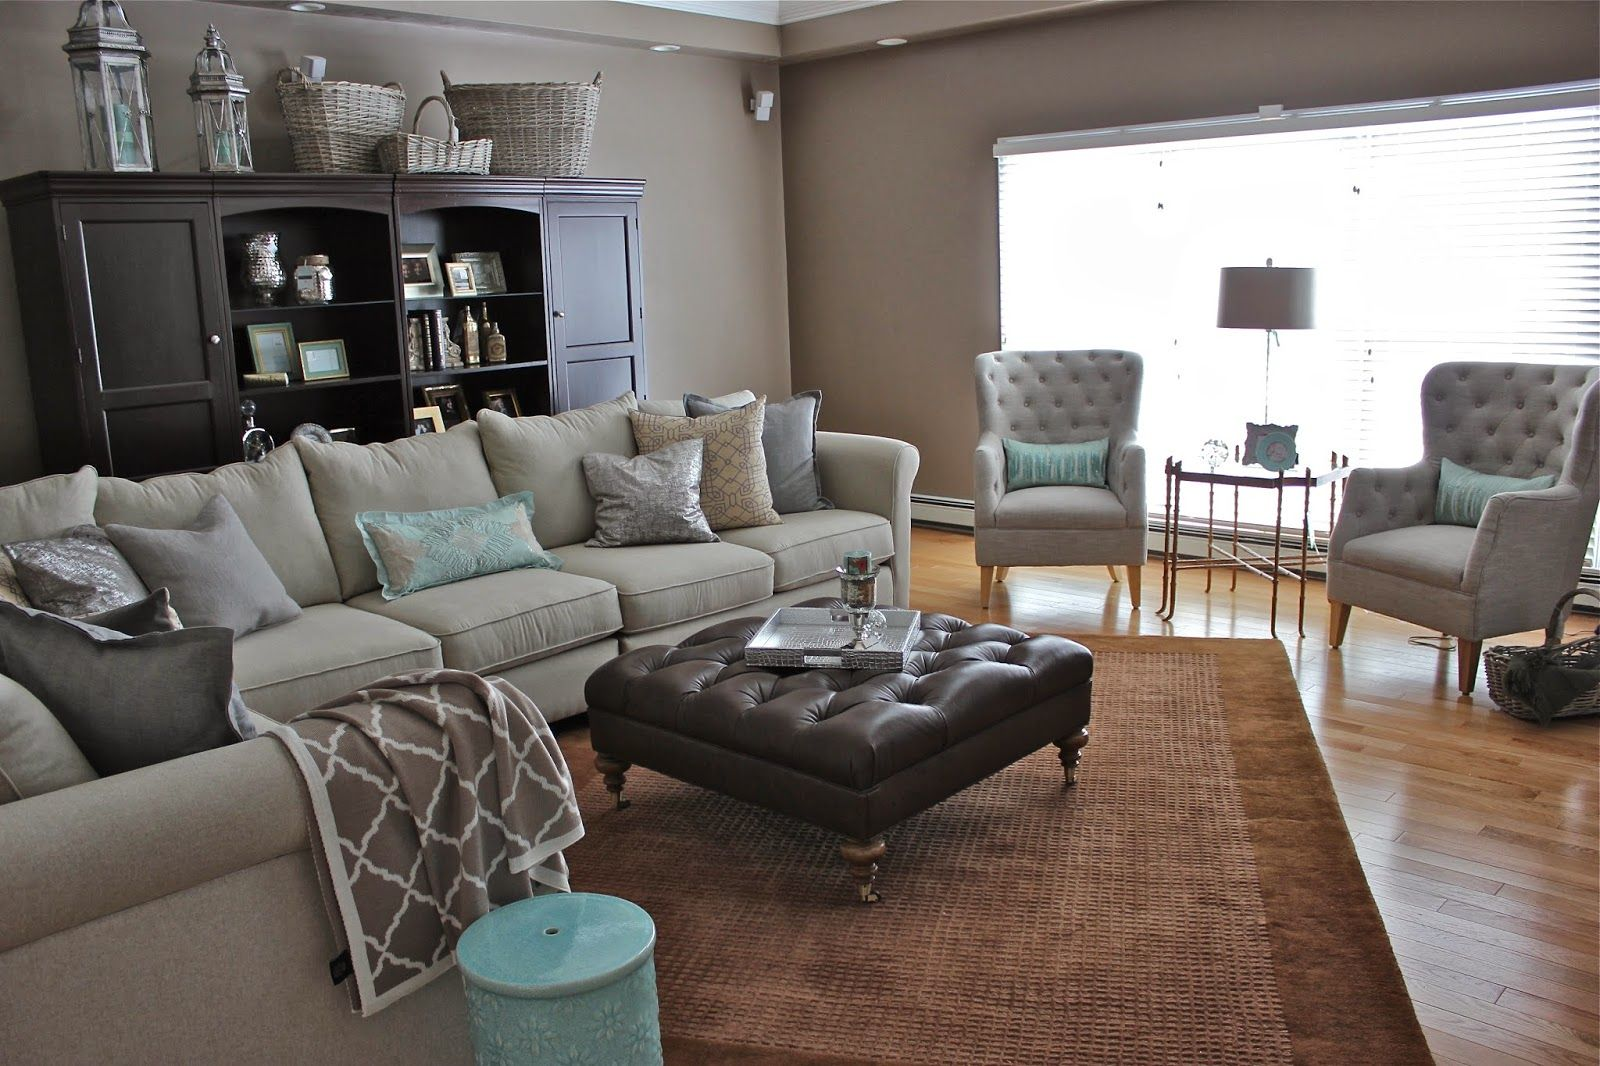 Image Result For Oak Floor Sofa Grey Couch Living Room Grey Sofa Decor Grey Couch Decor